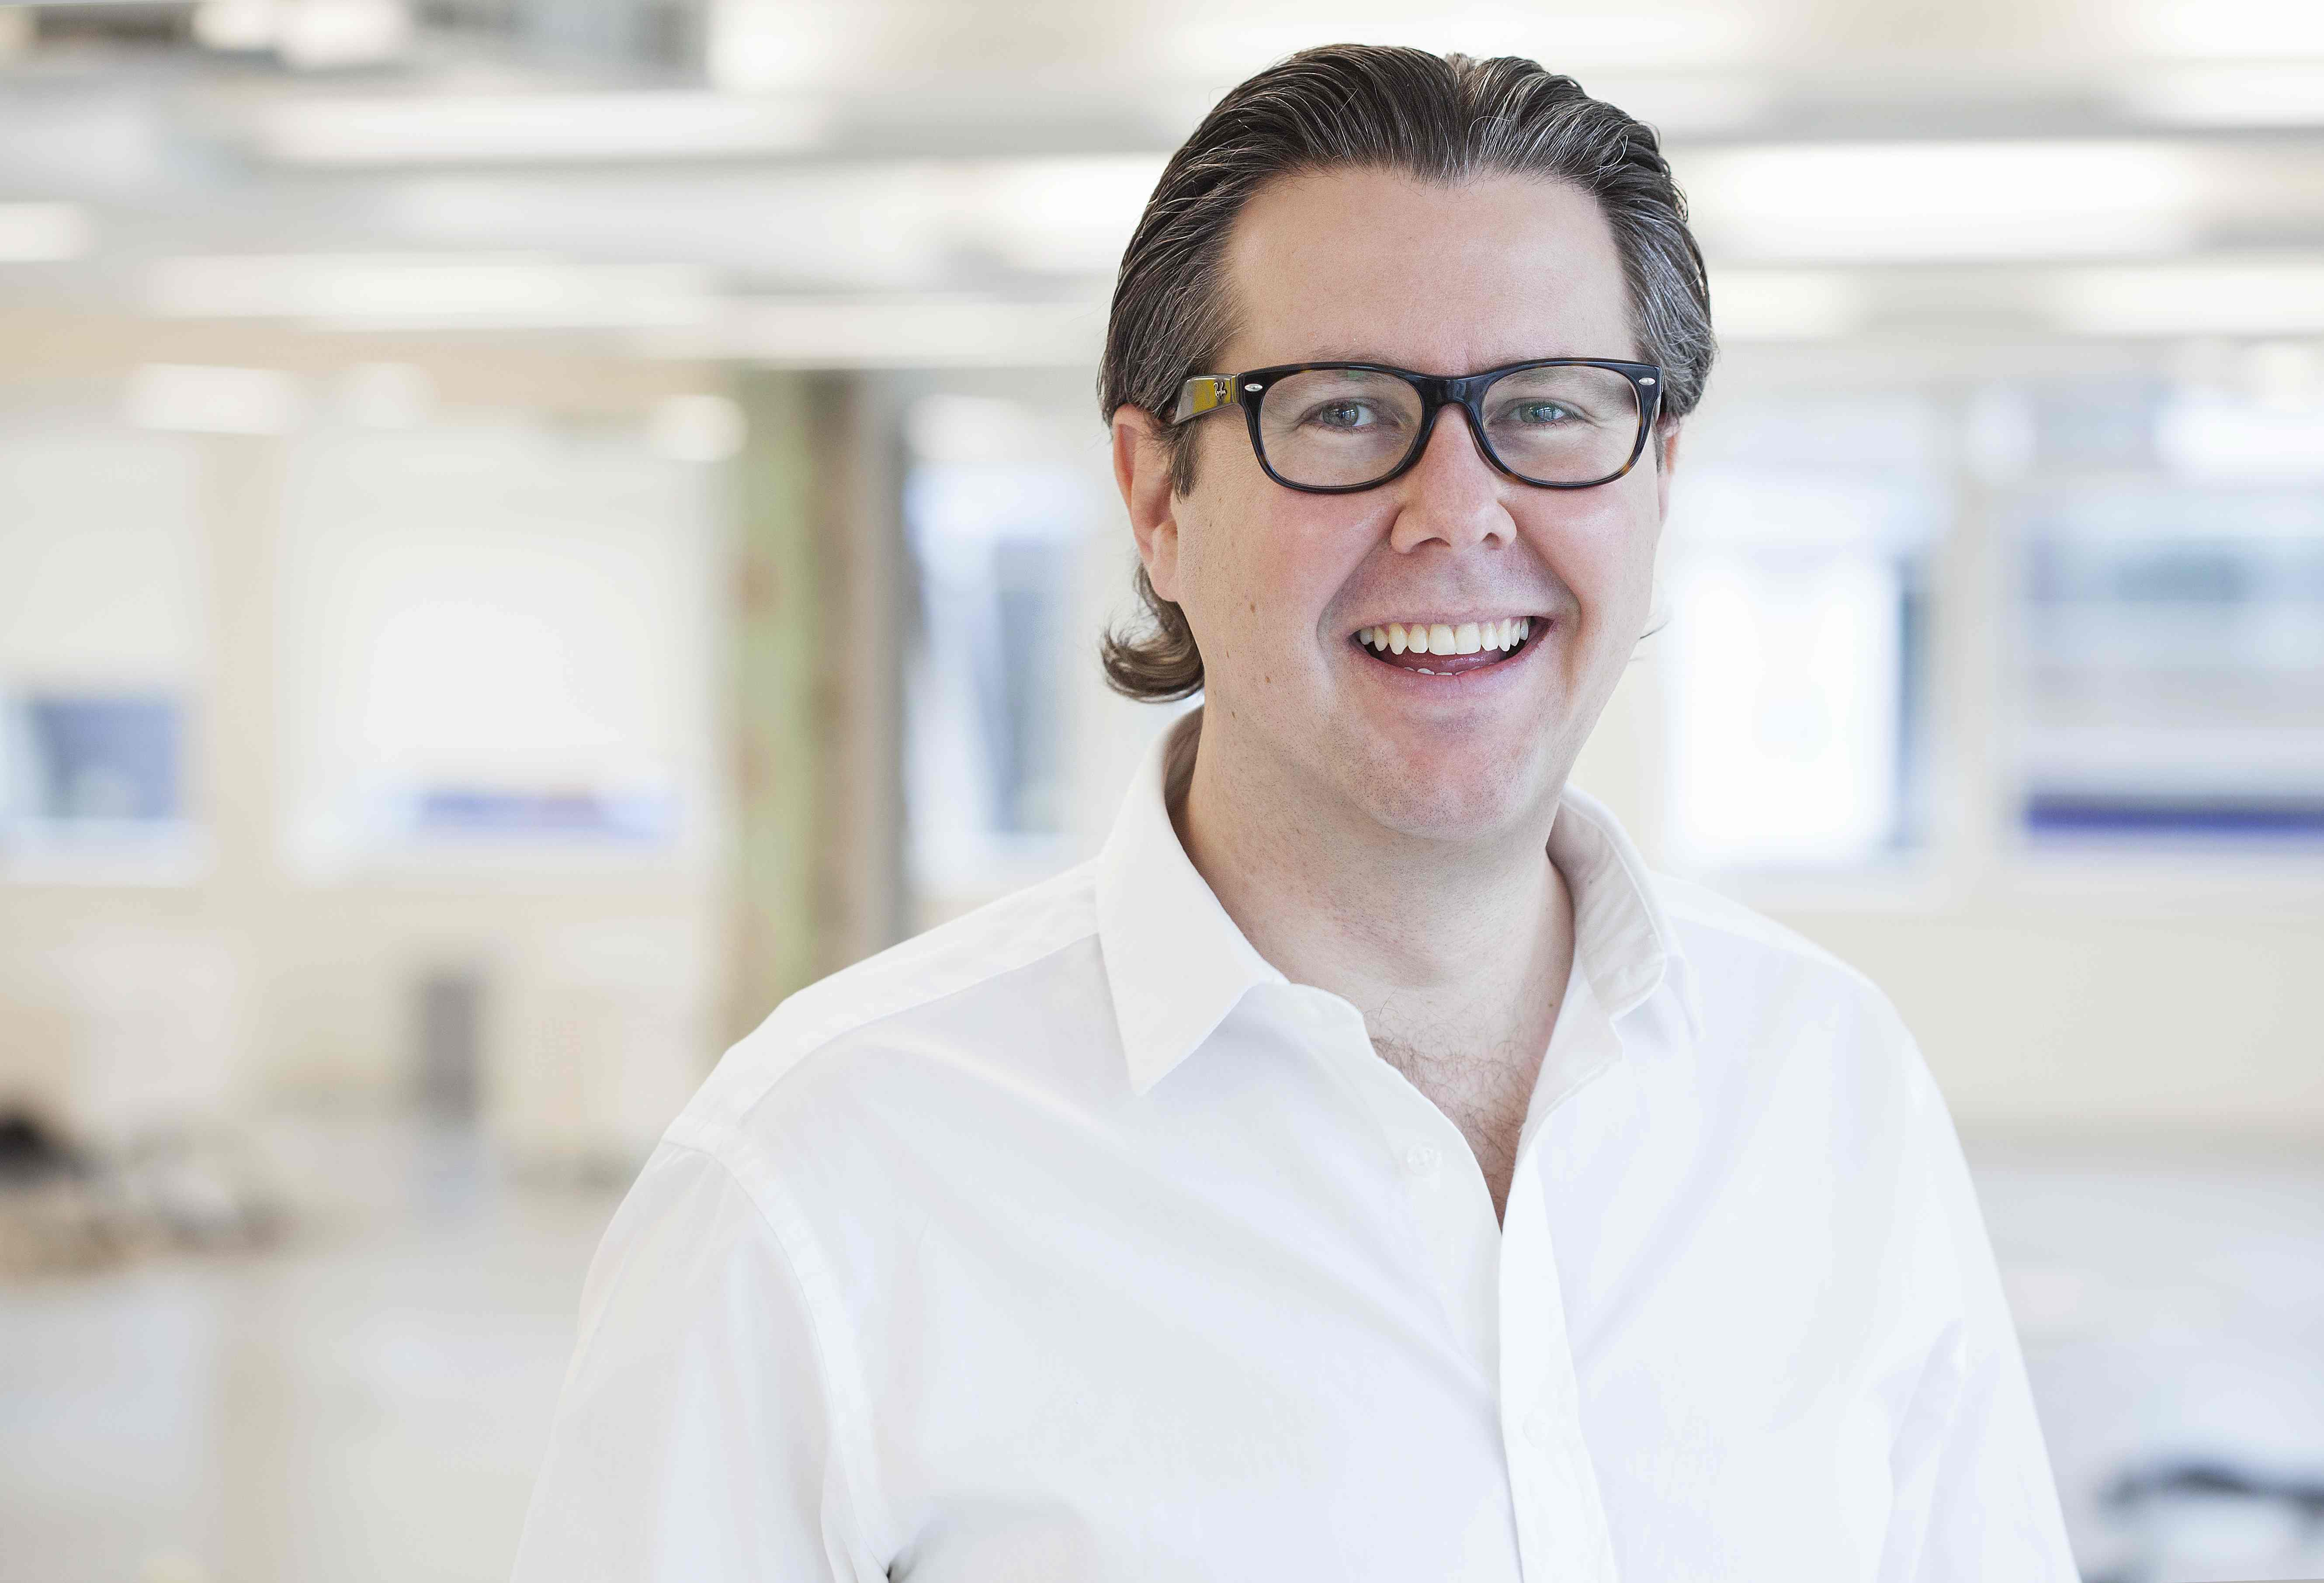 Leading marketplace lender shifts focus to sophisticated investors, nears £1bn in lending